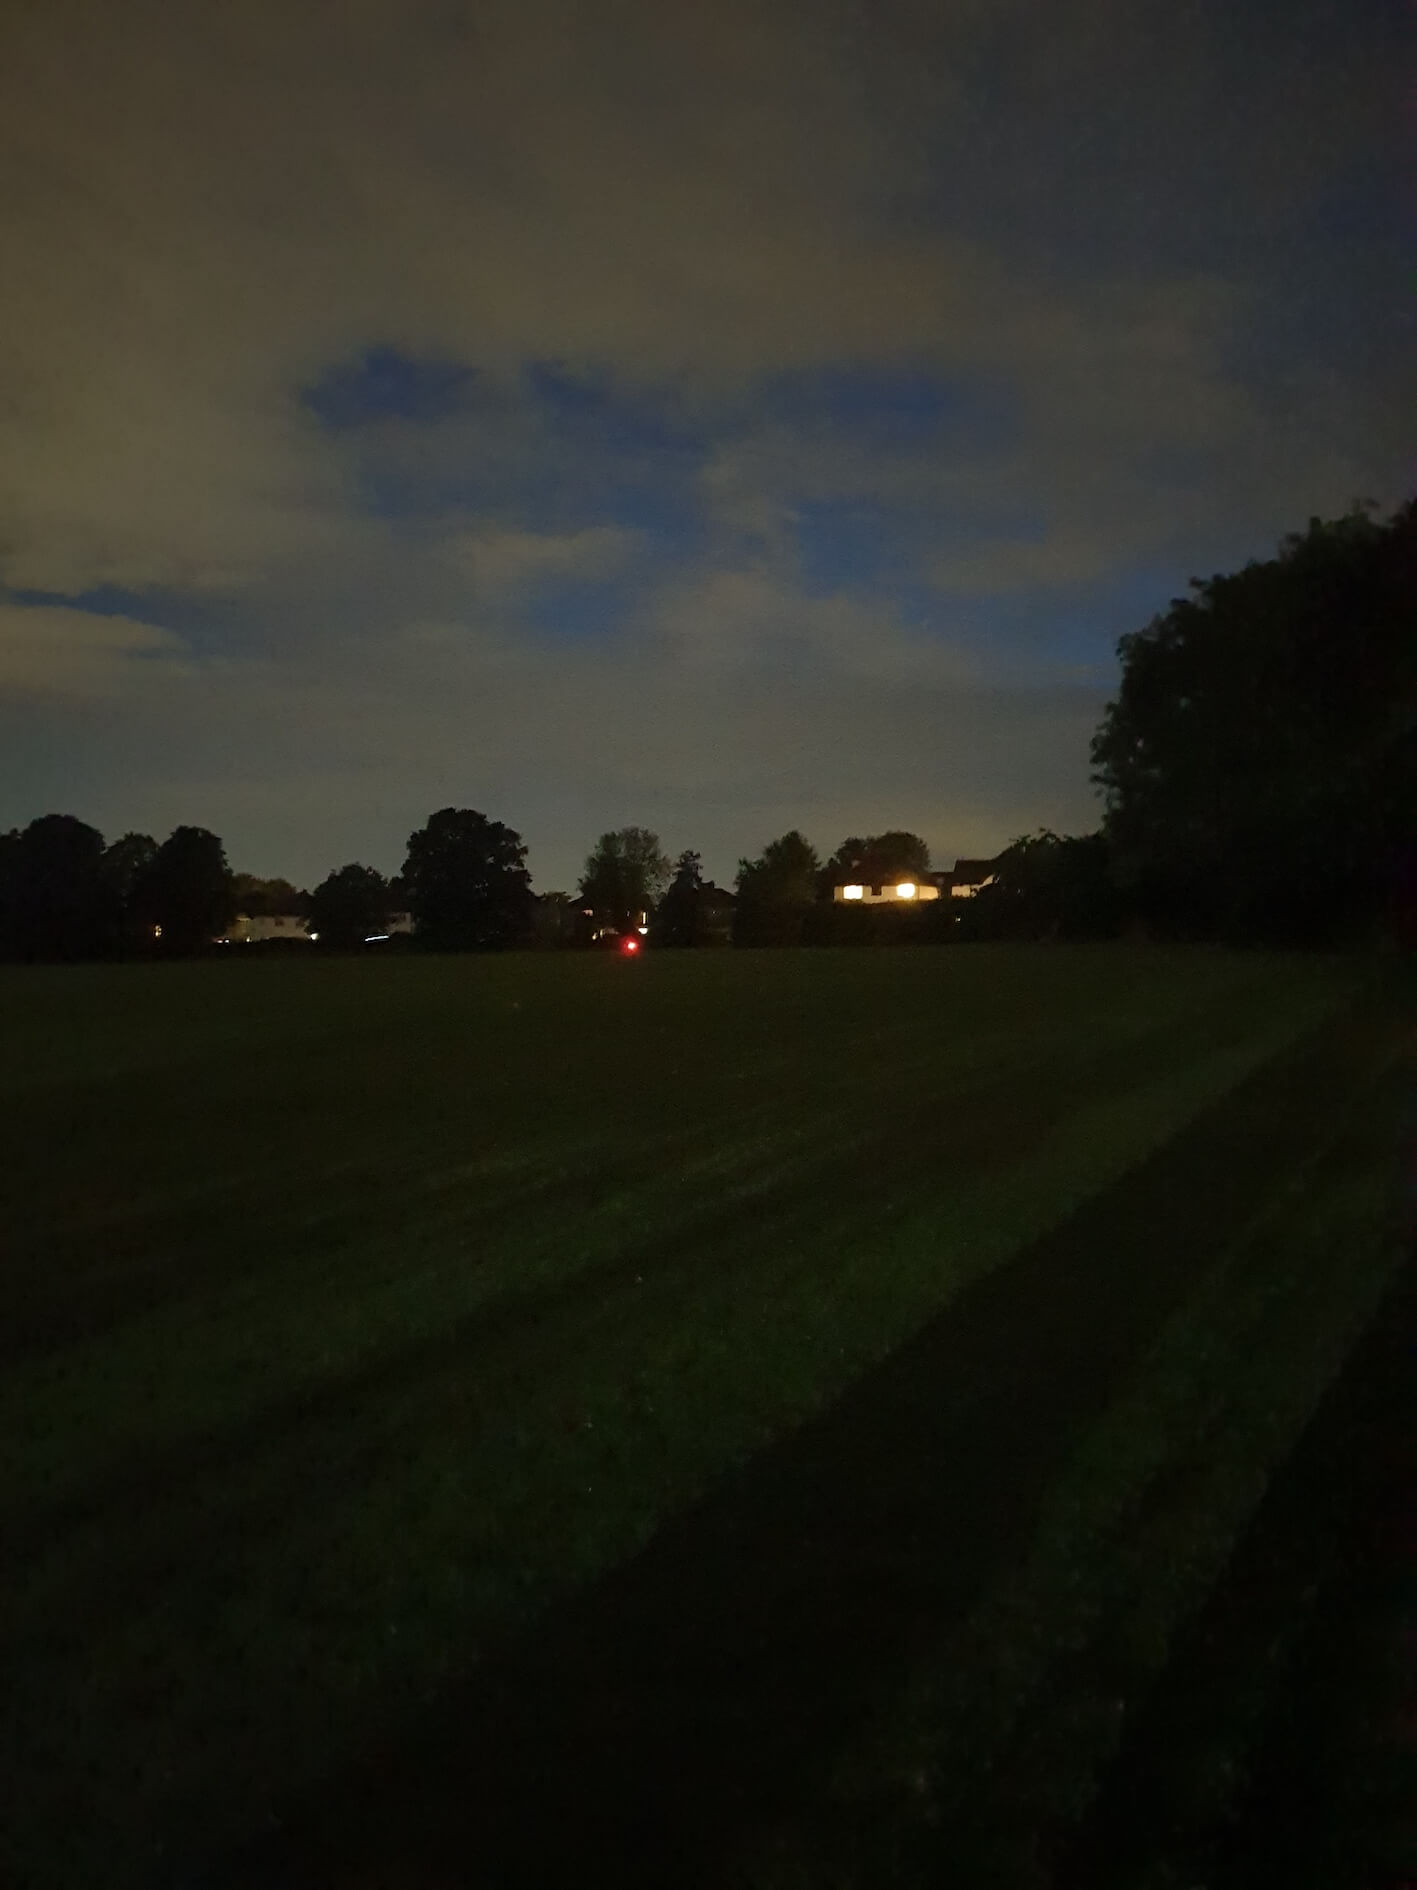 Cycle Light Sets - Olight RN1500 And SEEMEE 30 Review - tail light 250m